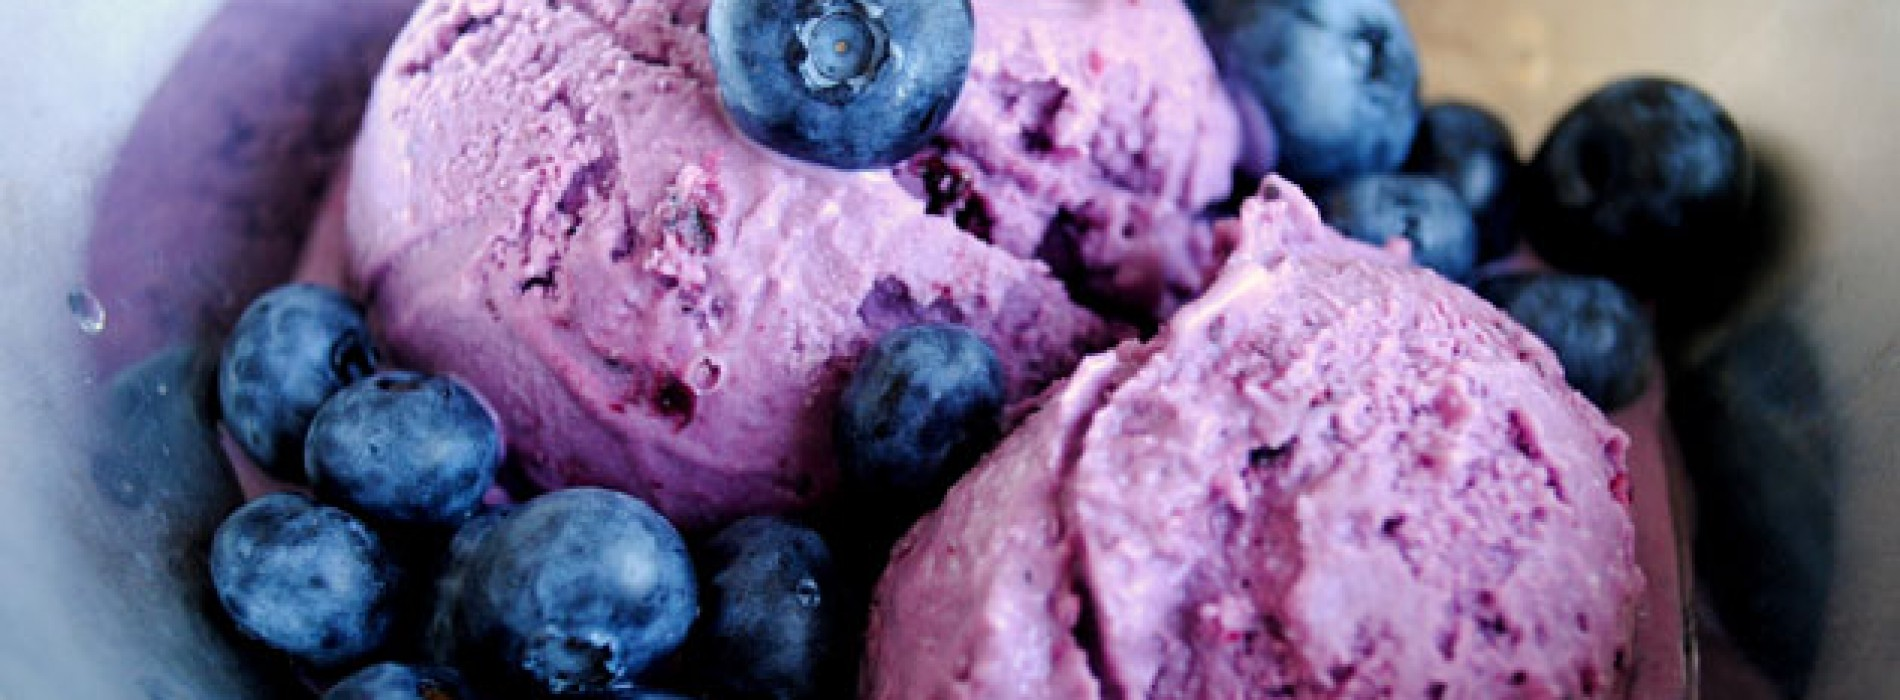 Food Find: Belly Ice Cream Company